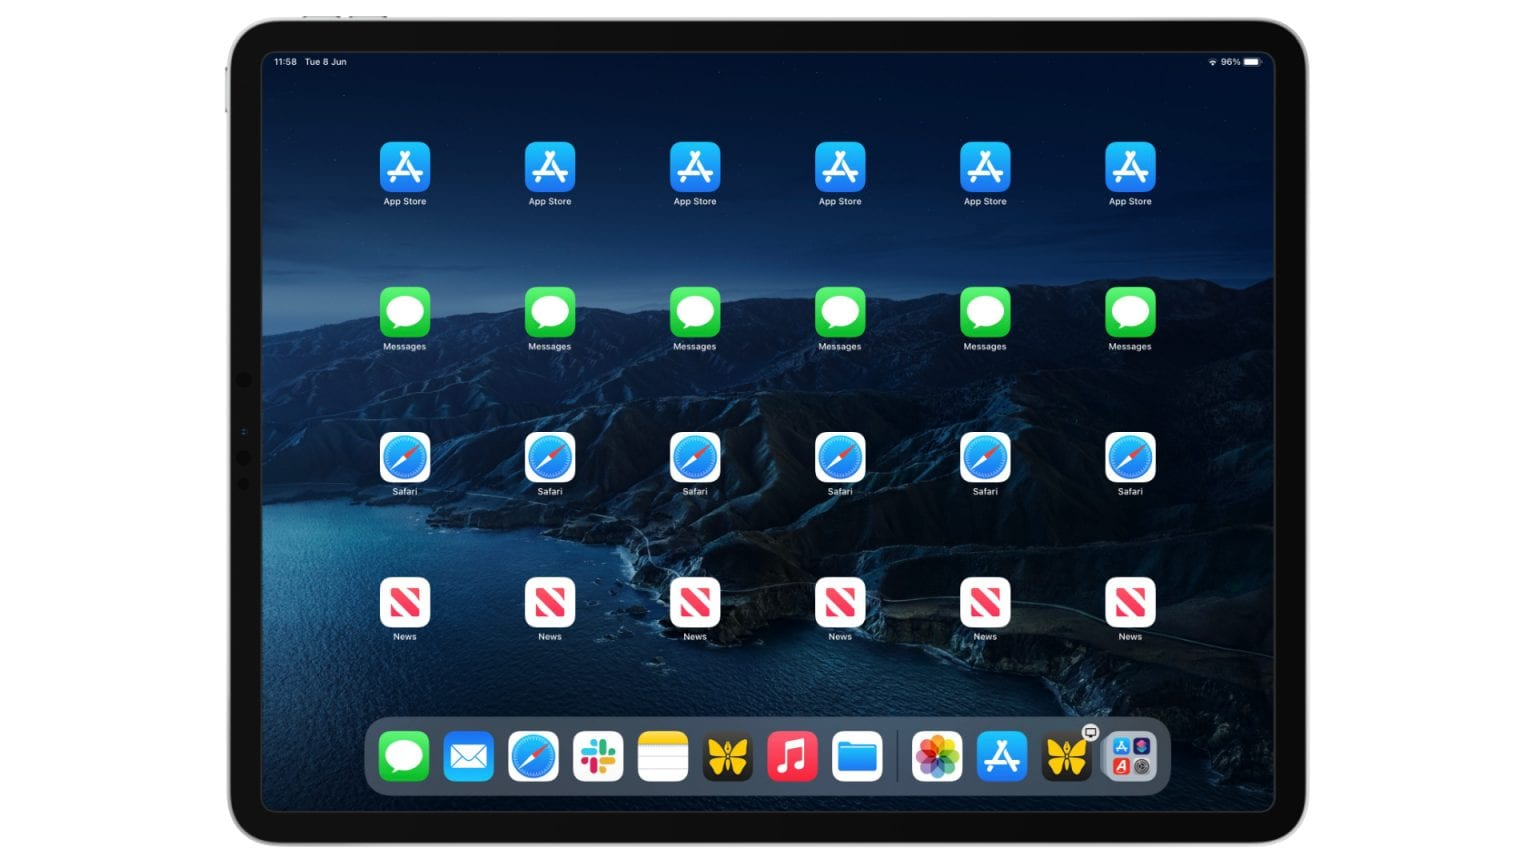 iOS 15 lets you put the same app on multiple Home screens